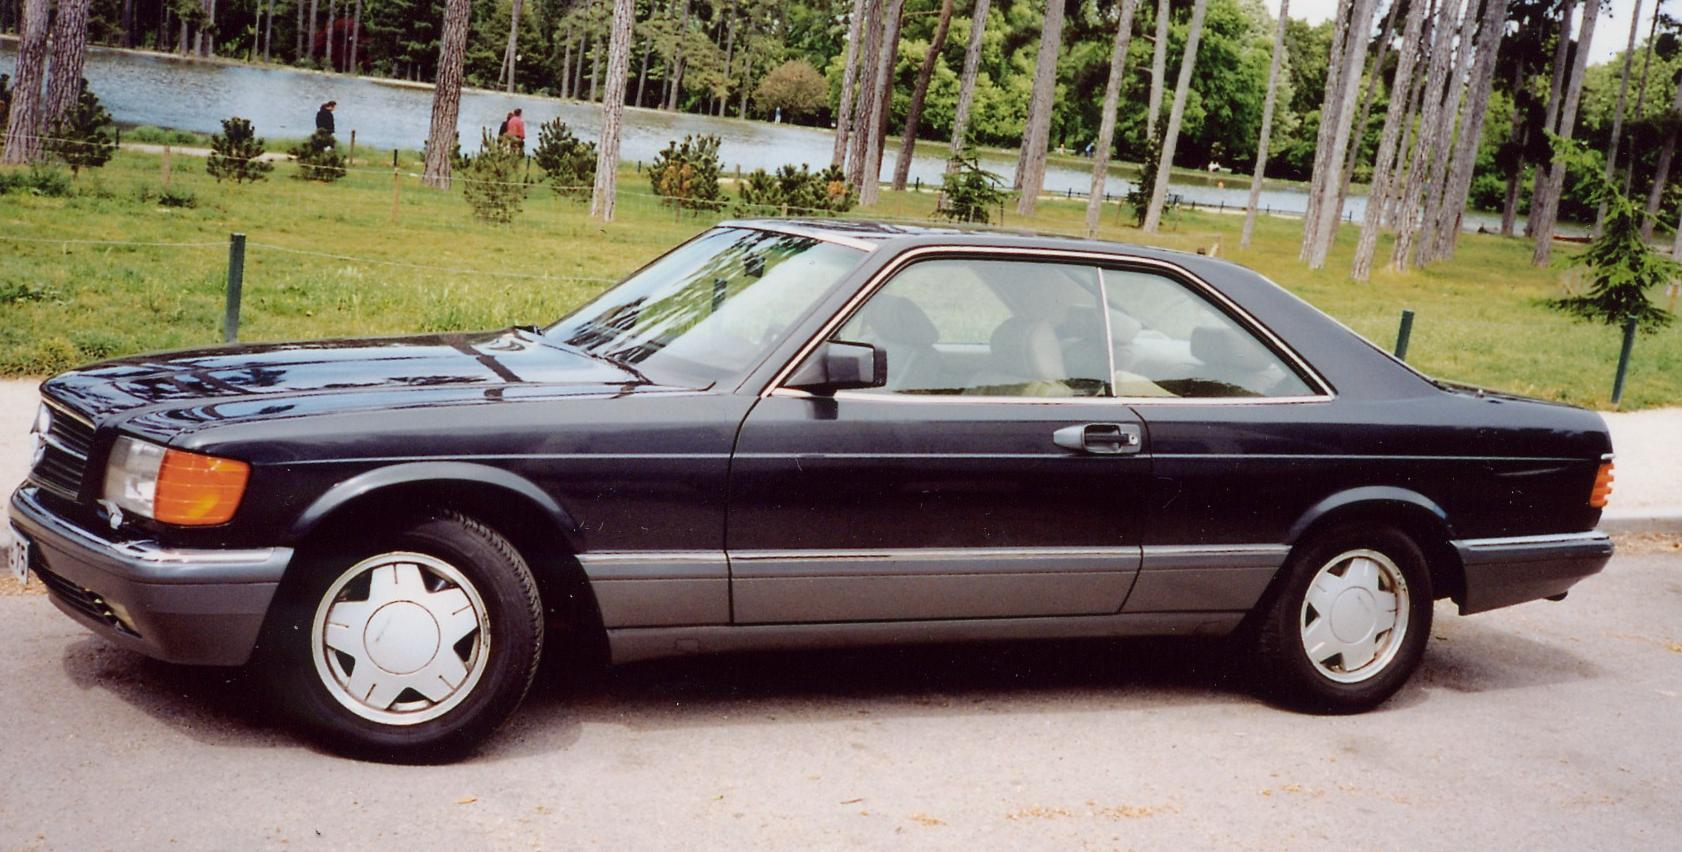 File:1986-1991 Mercedes-Benz 560 SEC (C126) coupe 01.jpg ...